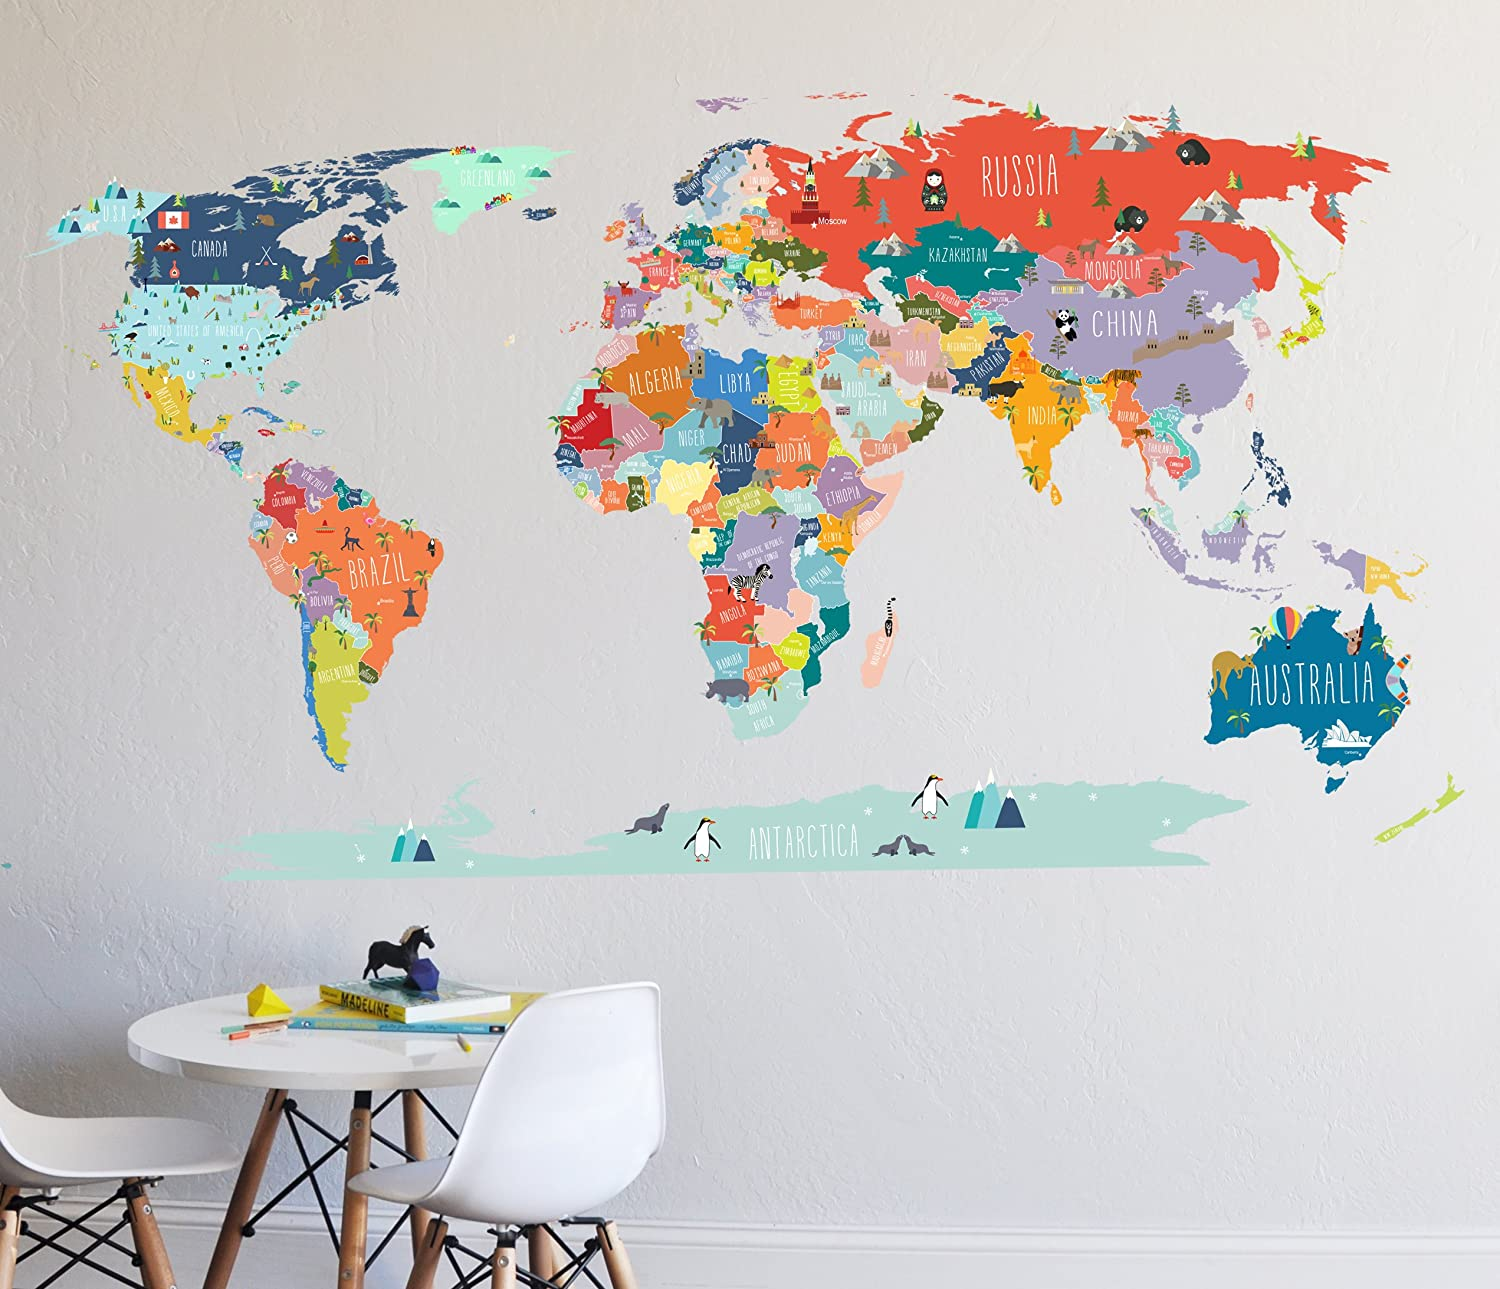 Amazon.com: Wall Decal - World Map interactive map - Wall ... on map lamp shade, map room divider, map travel, map venezuela flag, map in india, map in europe, map with states, map facebook covers, map cornwall uk, map tools, map recipe, map cross stitch, map of montana, map with mountains, map se usa, map color, map games, map design, map with title, map example,